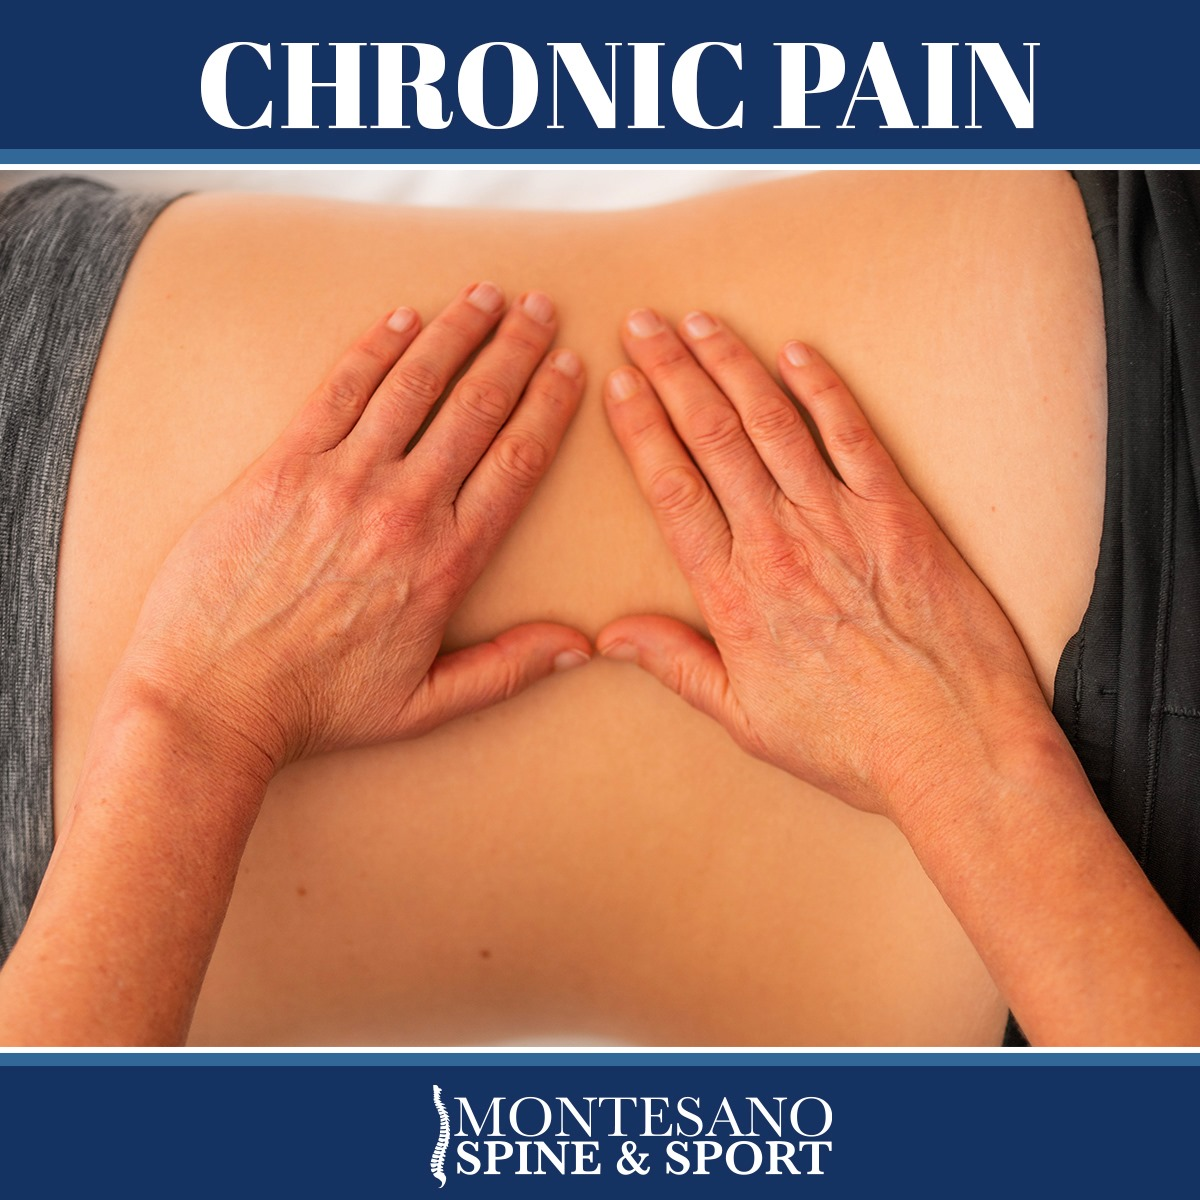 You are currently viewing Chronic pain